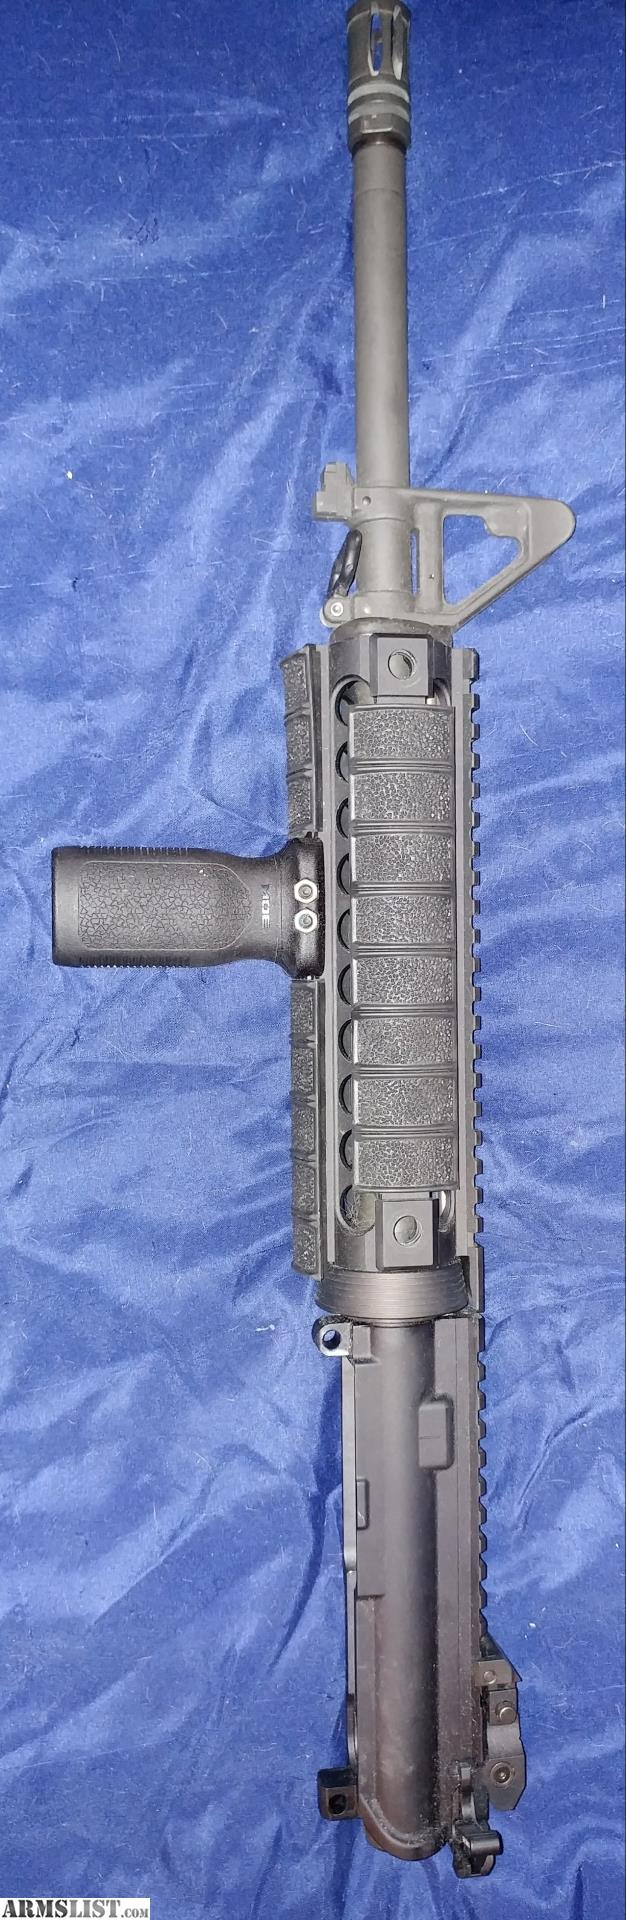 AR 15 Complete Uppers for Sale   Midsouth Shooters